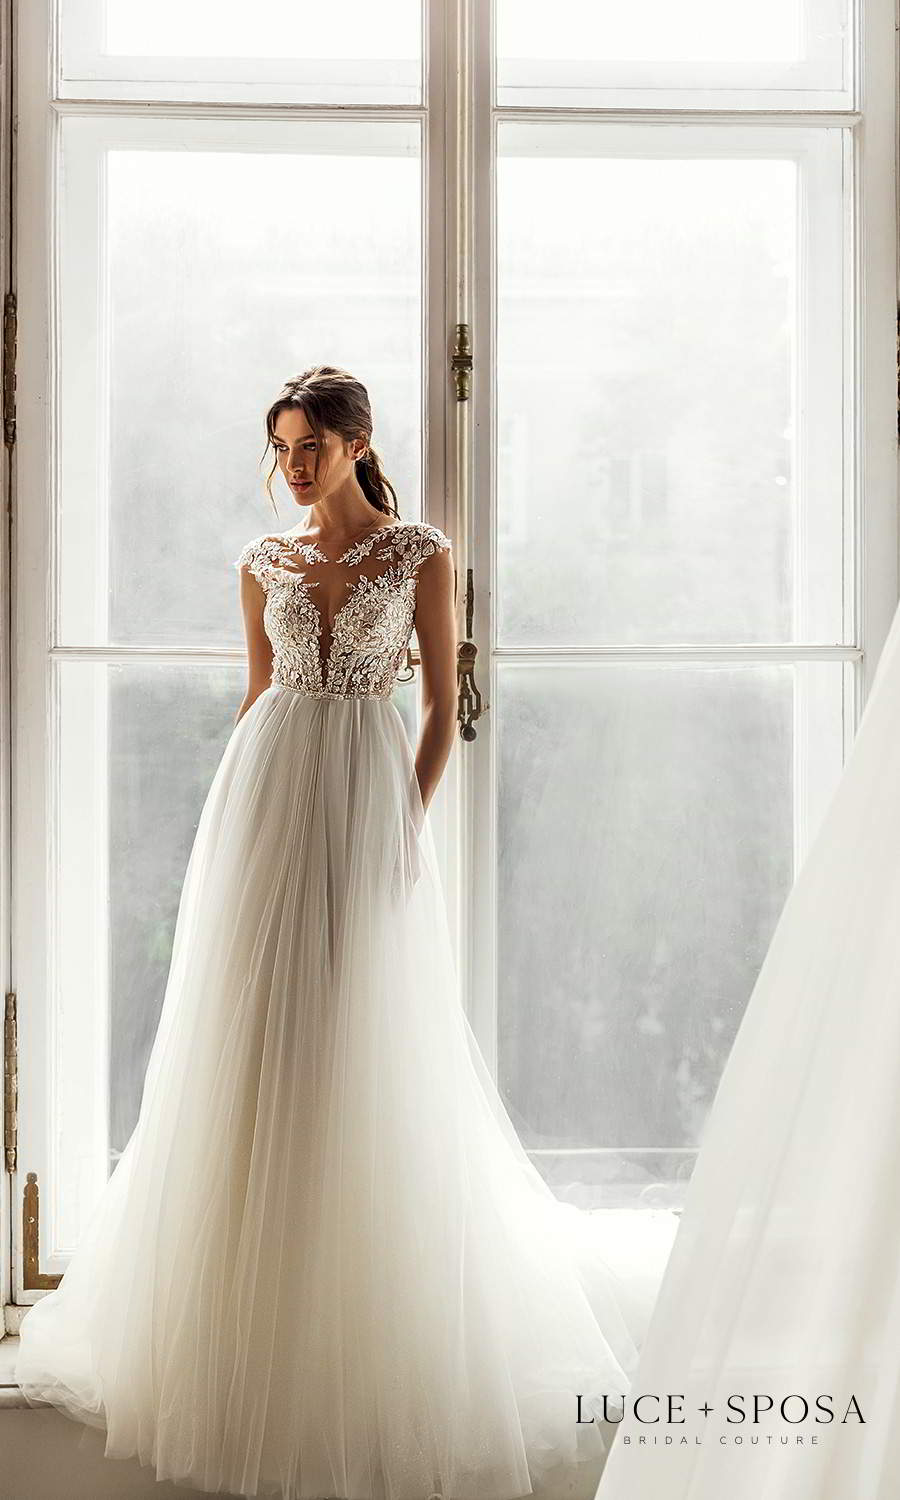 luce sposa 2021 shades of couture bridal cap sleeves plunging sweetheart neckline heavily embellished bodice clean skirt a line ball gown wedding dress chapel train (genesis) mv